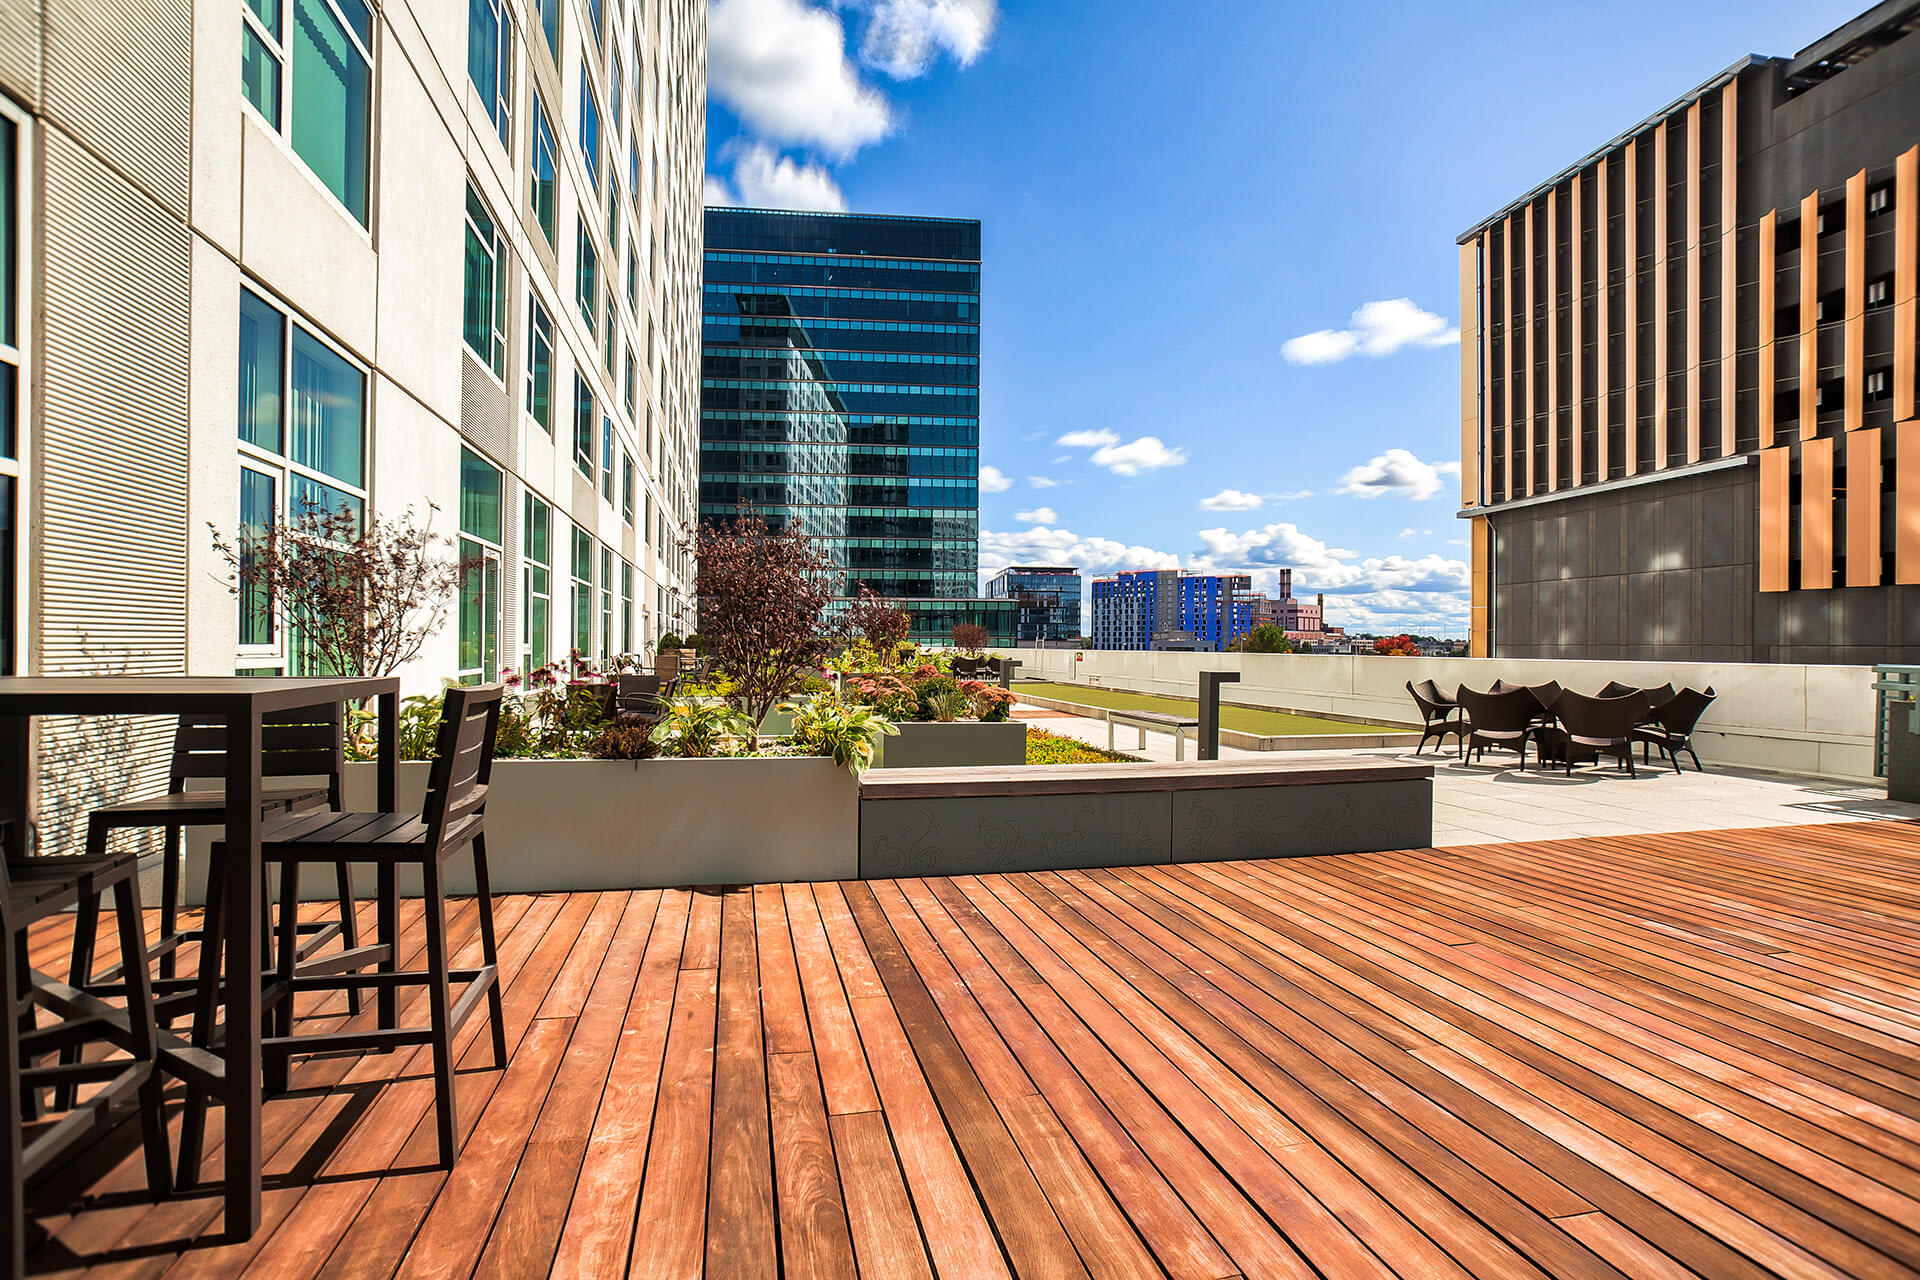 Outdoor Regulation Sized Bocce Ball Court at Waterside Place by Windsor, Boston, 02210